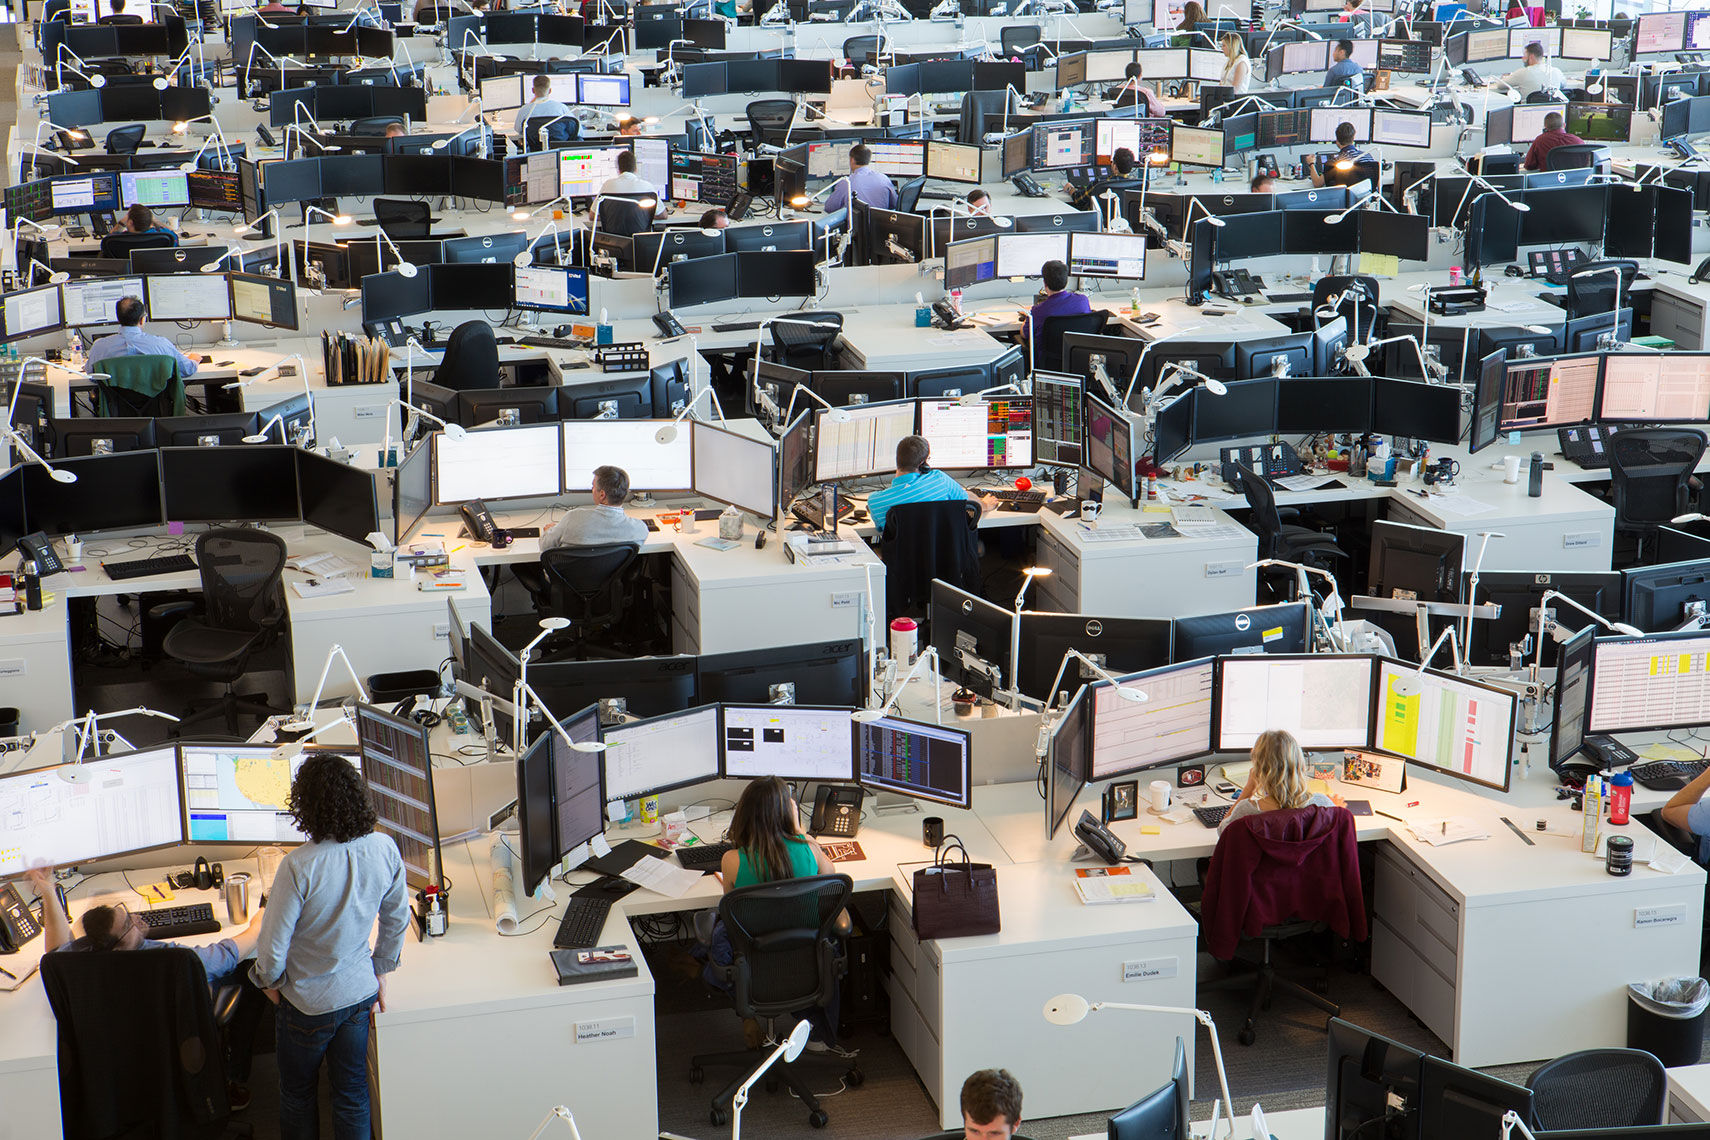 Stock trading floor in Houston, Texas by an annual report photographer in Austin